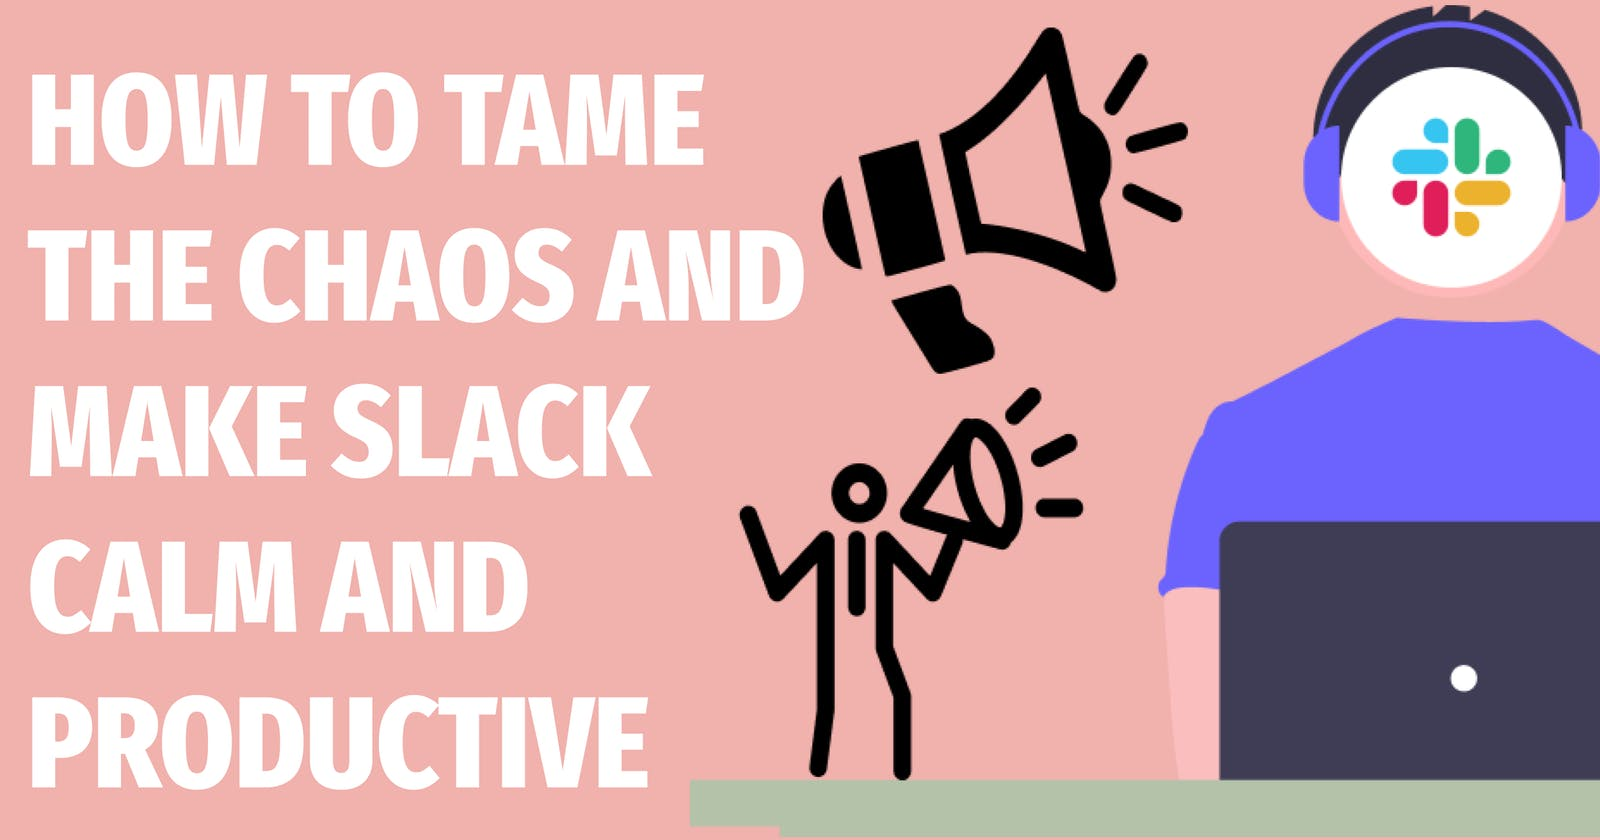 How to tame the chaos and make Slack calm and productive